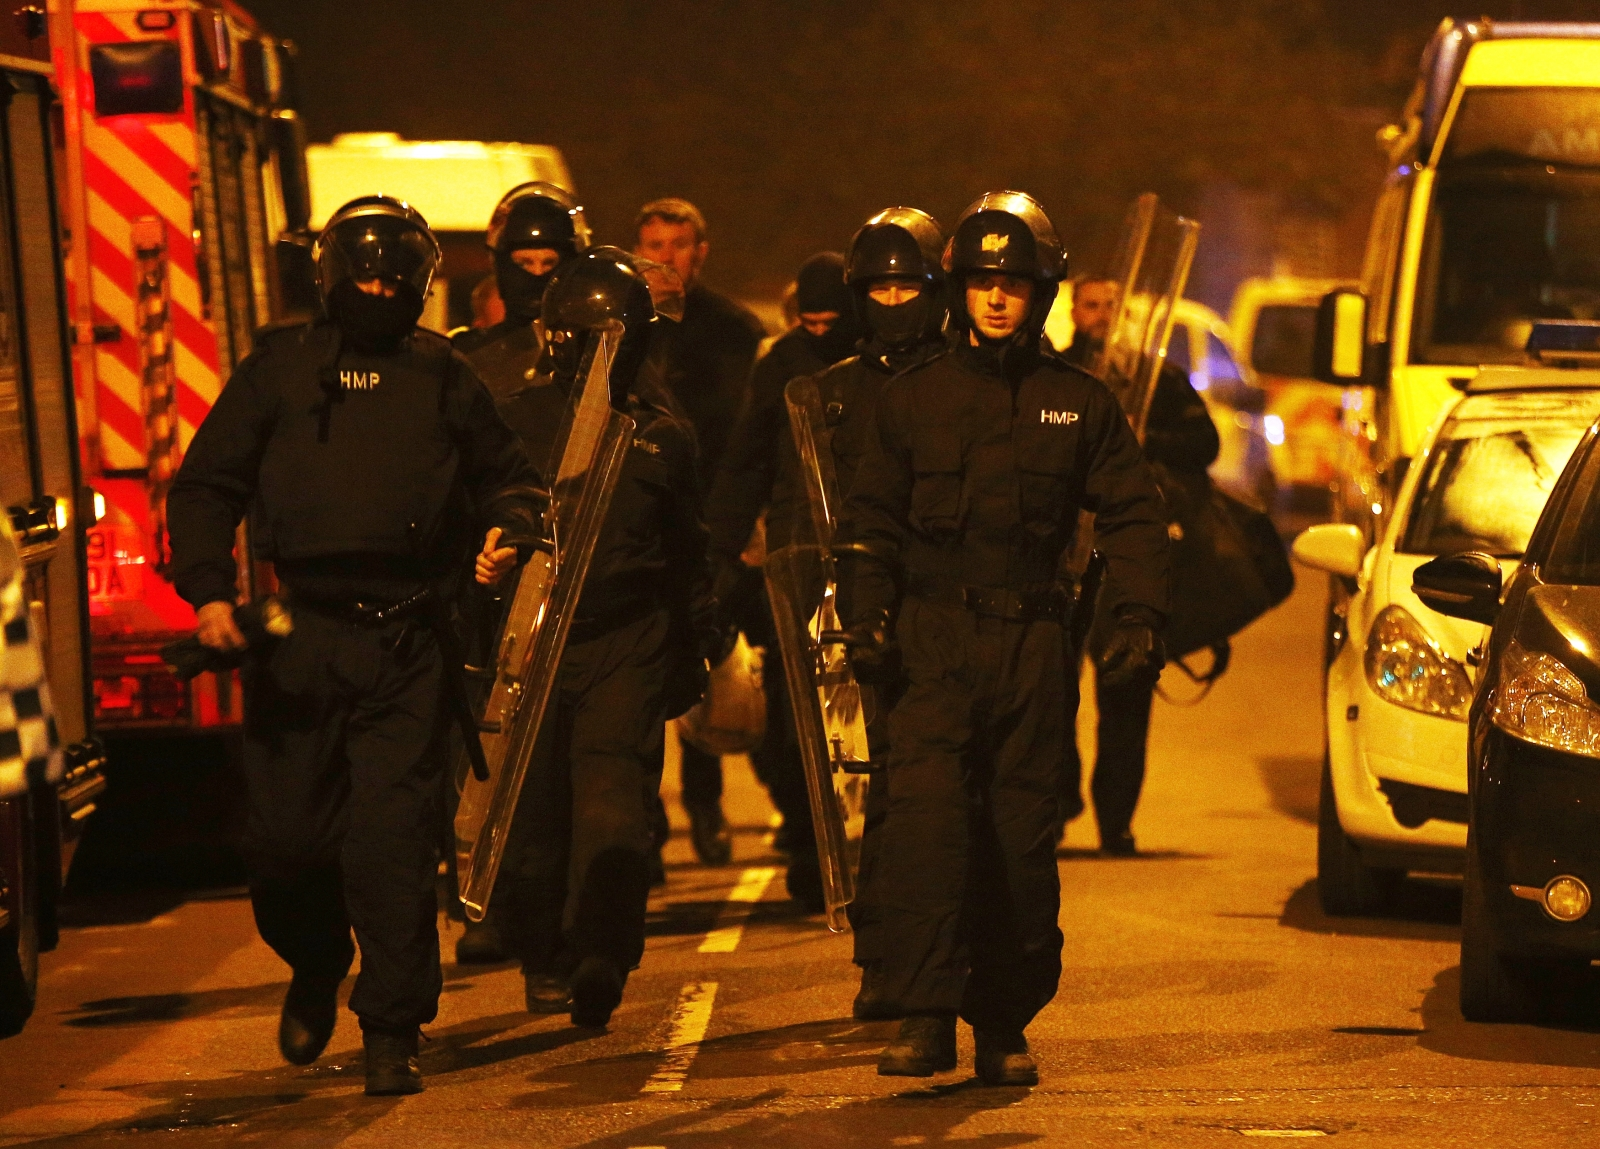 Hmp Birmingham Riots Triggered By Cold Showers Say Reports